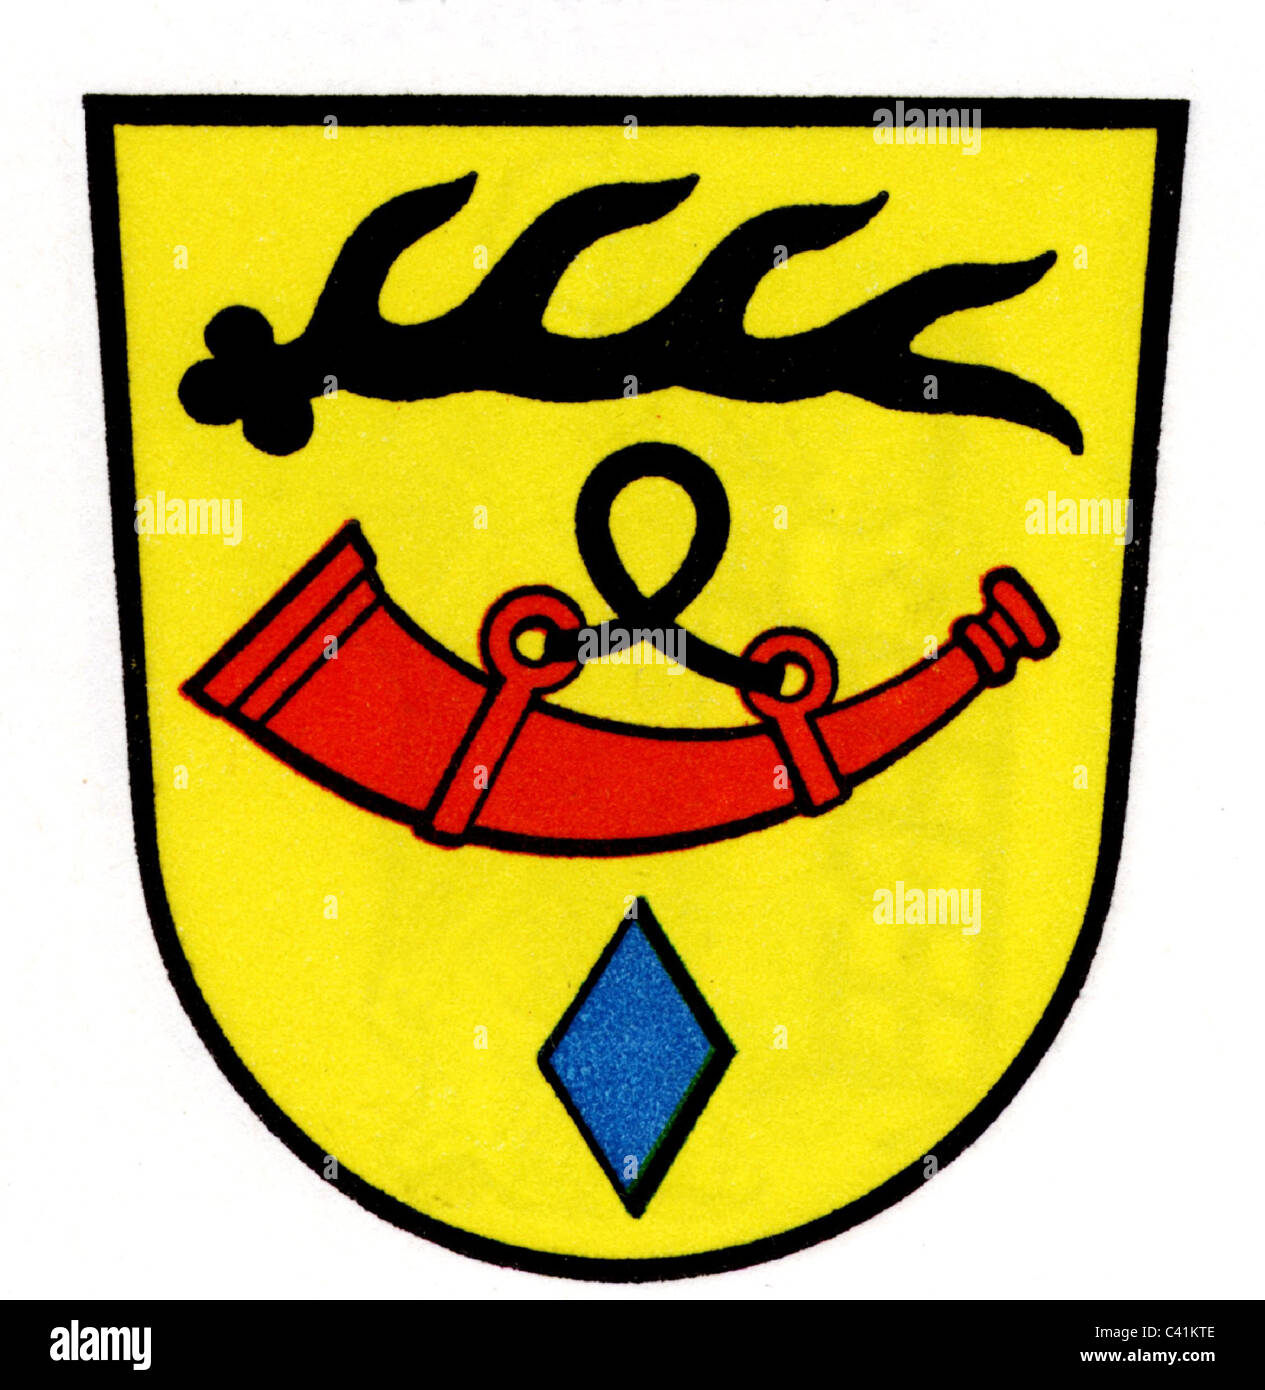 coat of arms / emblems, Nuertingen, city arms, Baden-Wuerttemberg, Germany, Additional-Rights-Clearences-NA - Stock Image